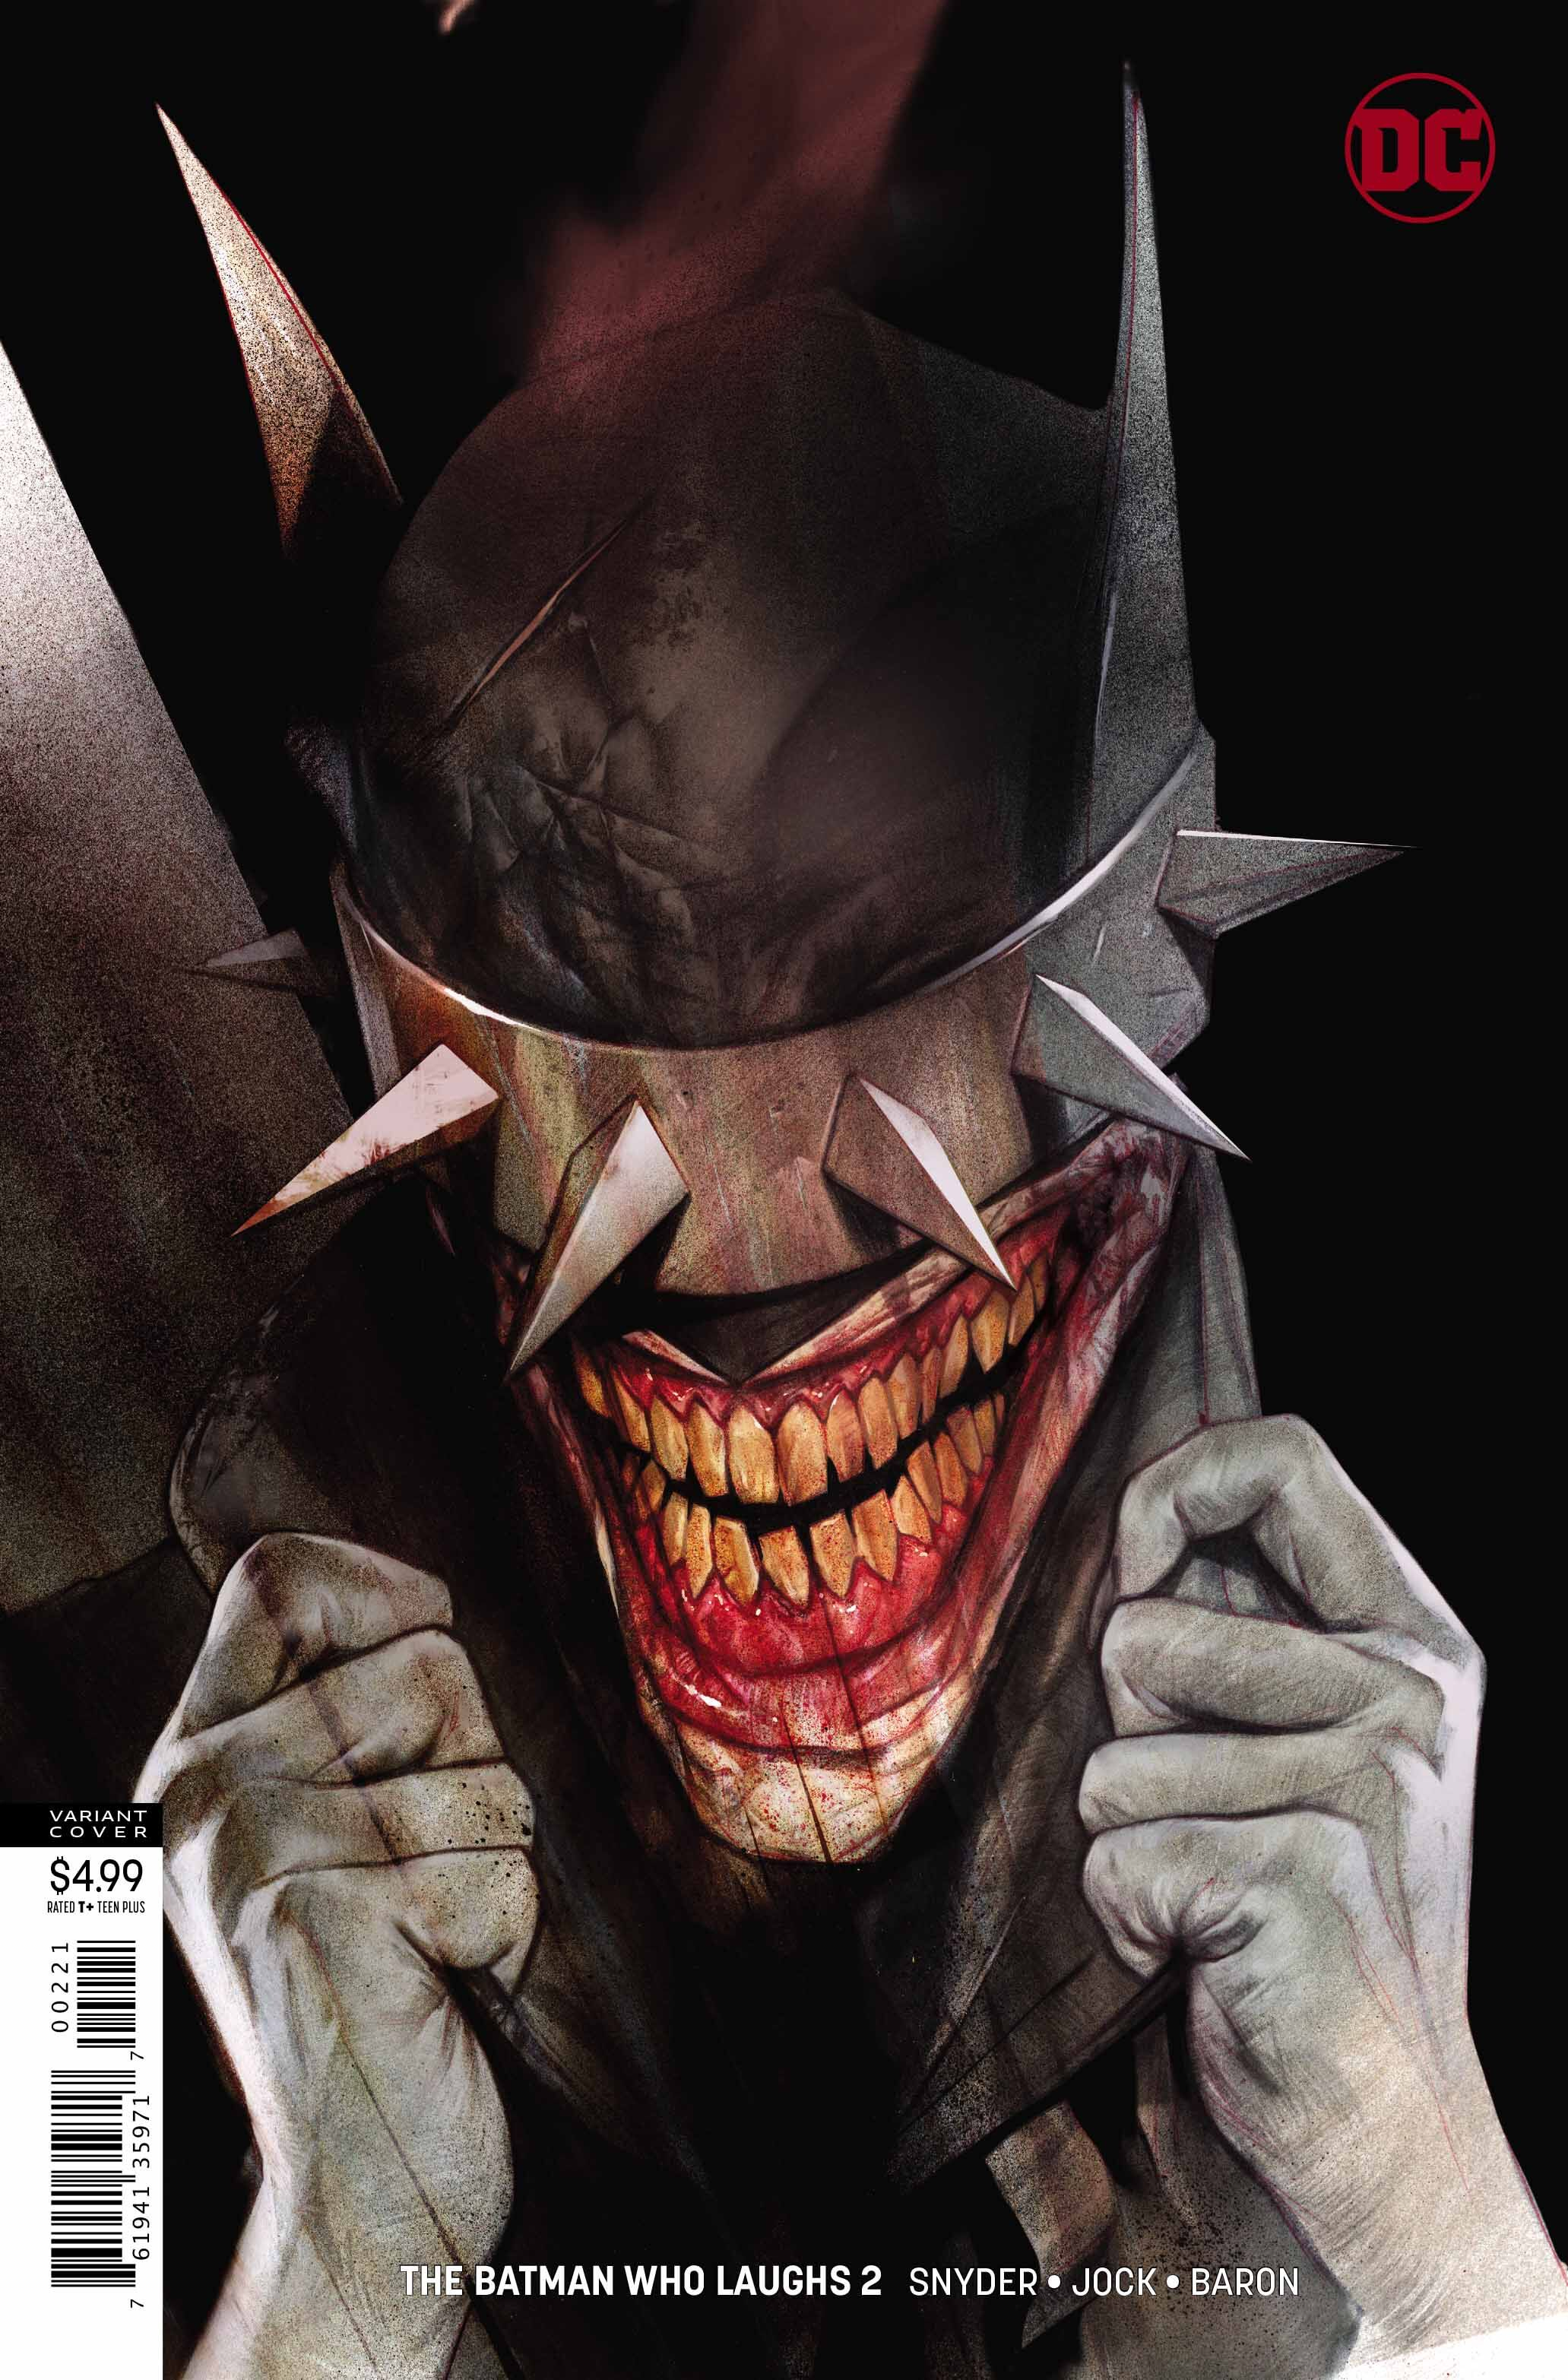 The Batman Who Laughs #2 variant cover